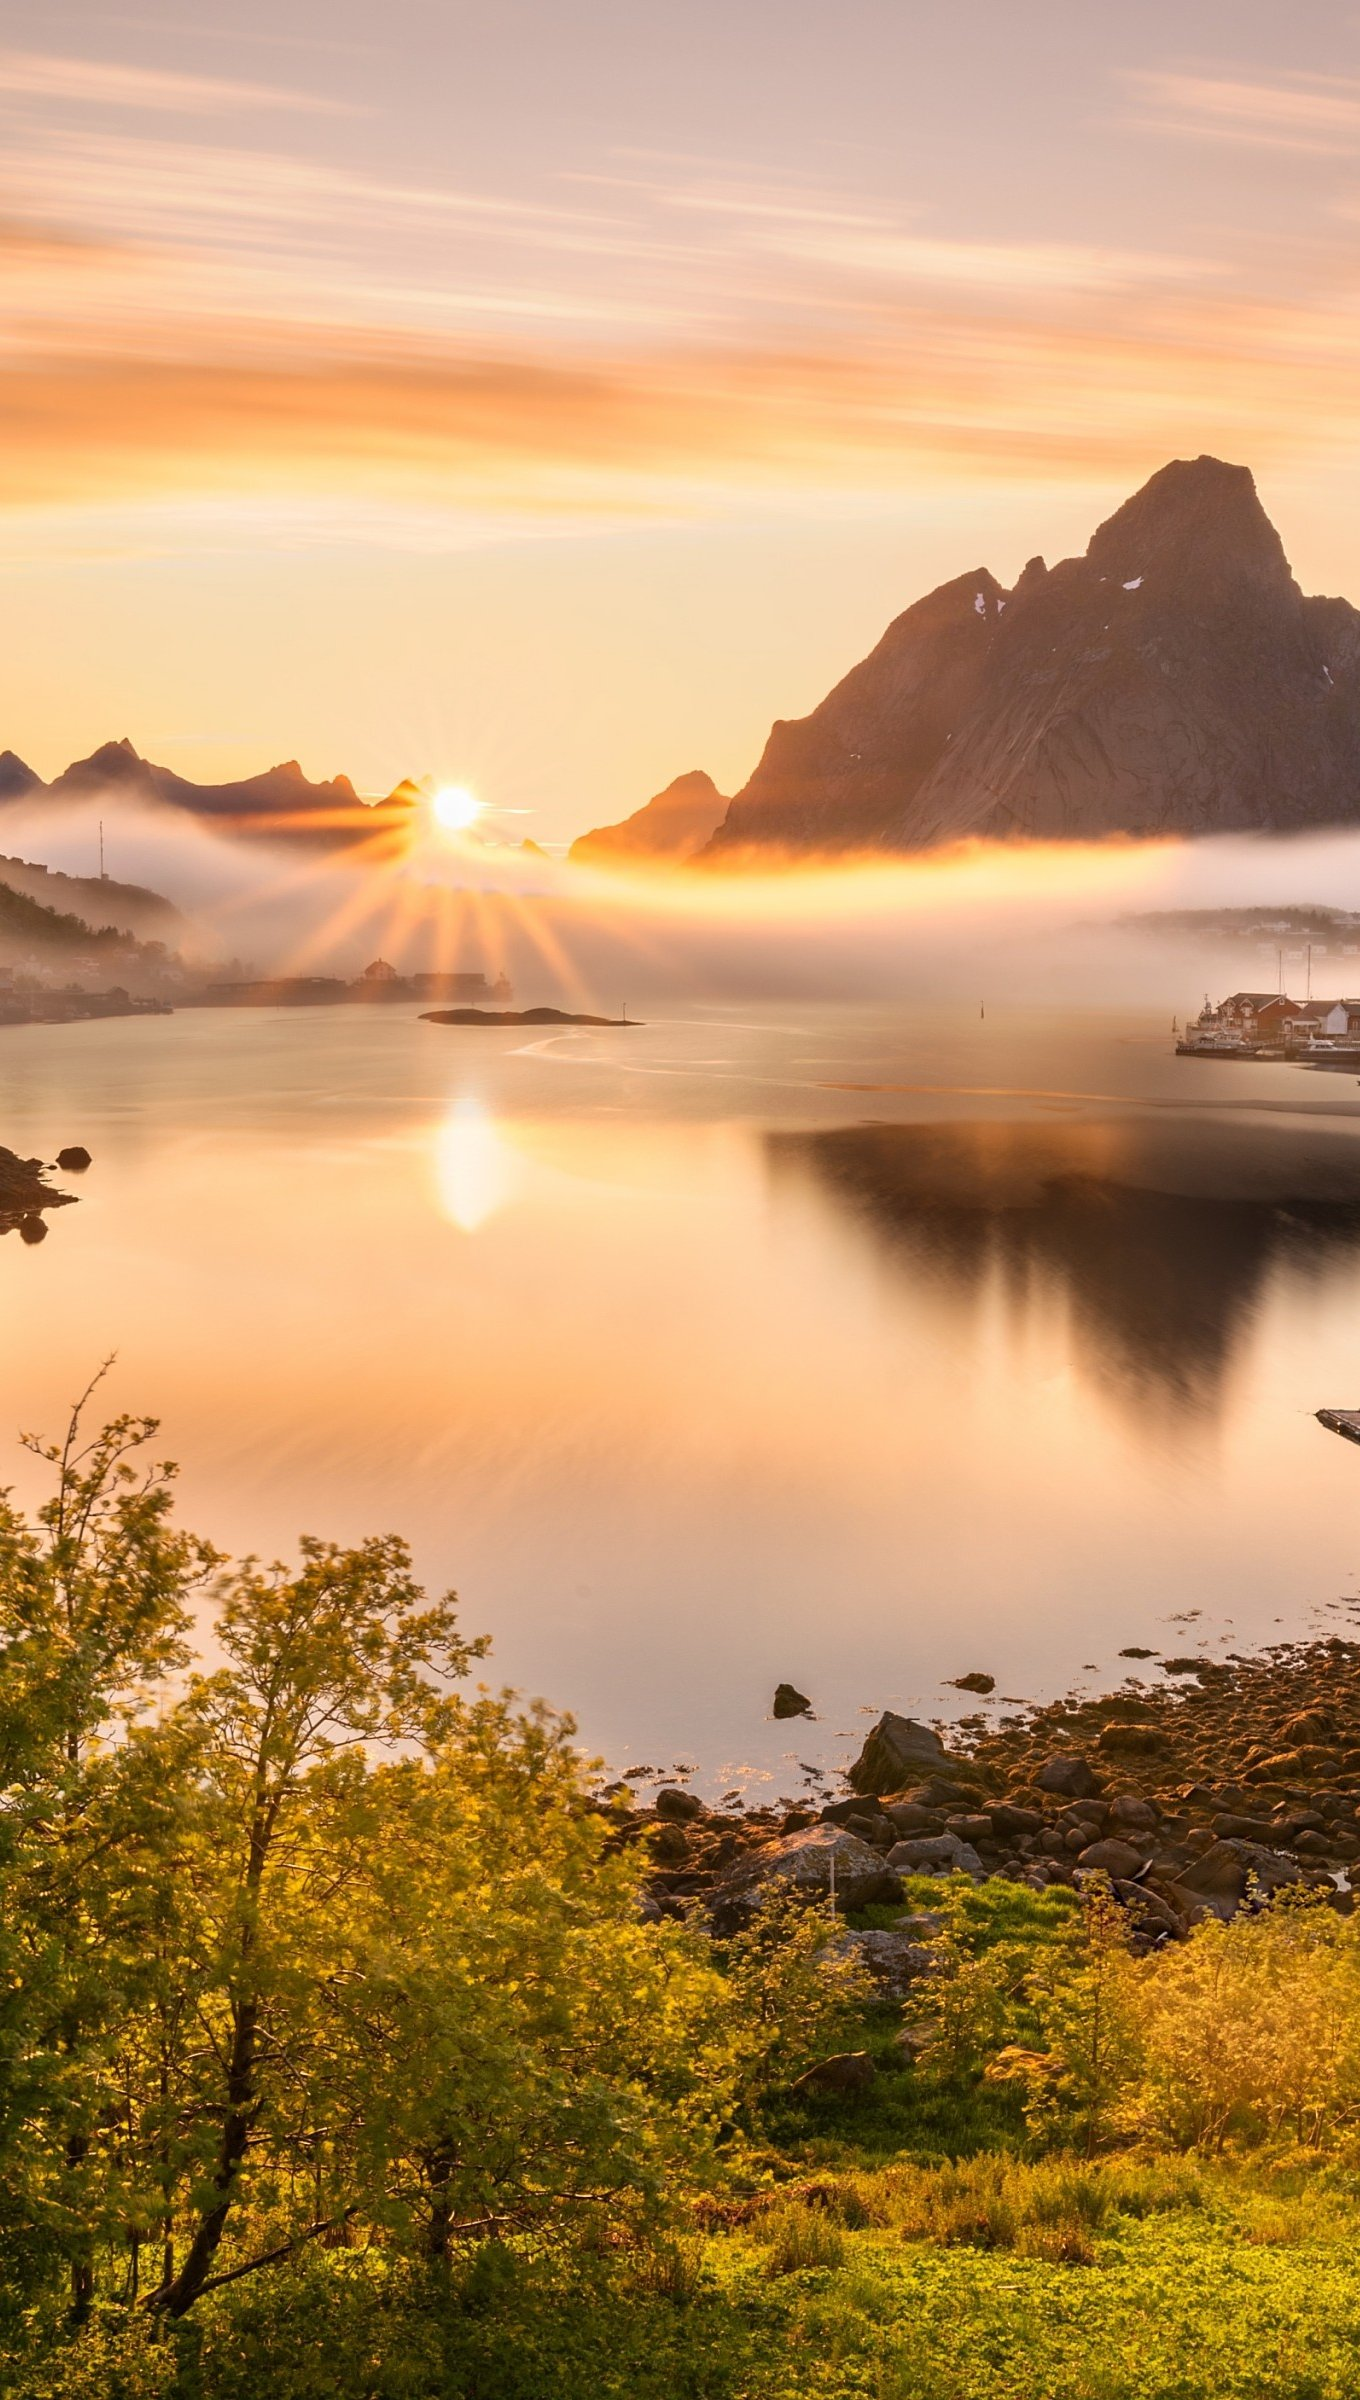 Wallpaper Norway Scenery Mountains at sunset Vertical